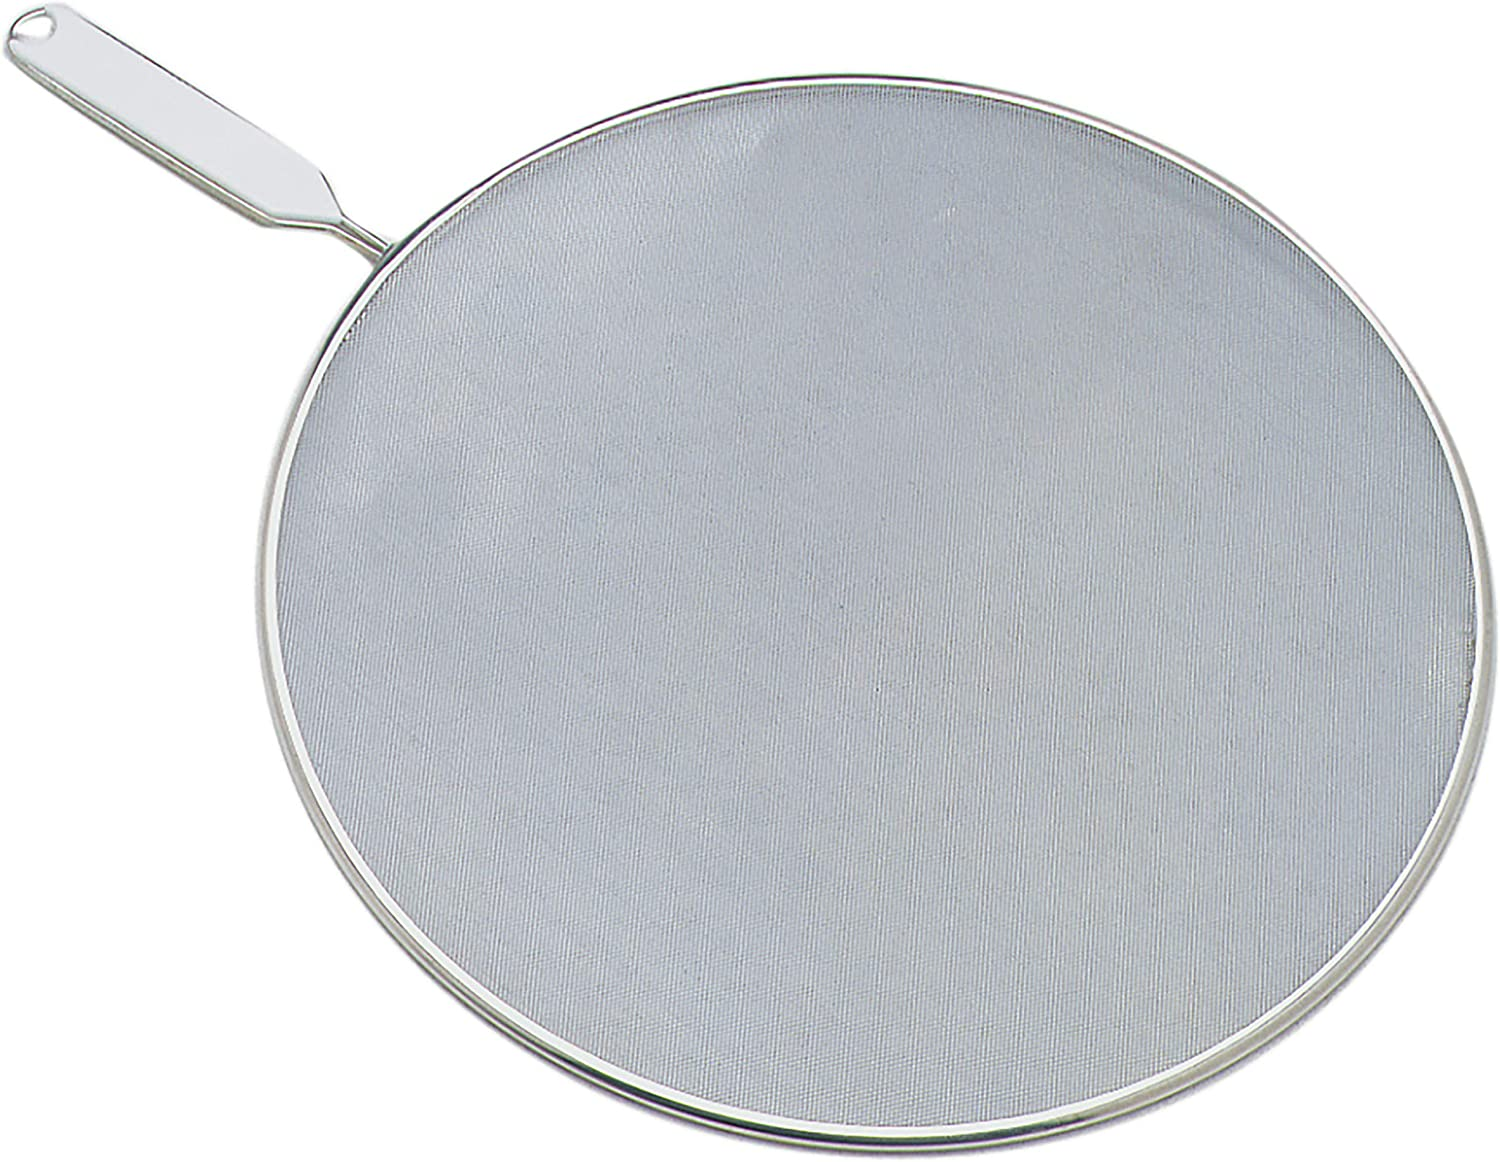 Cooking Anti-Frying Pan Splatter Screen Guard Cover With Handle 33 cm